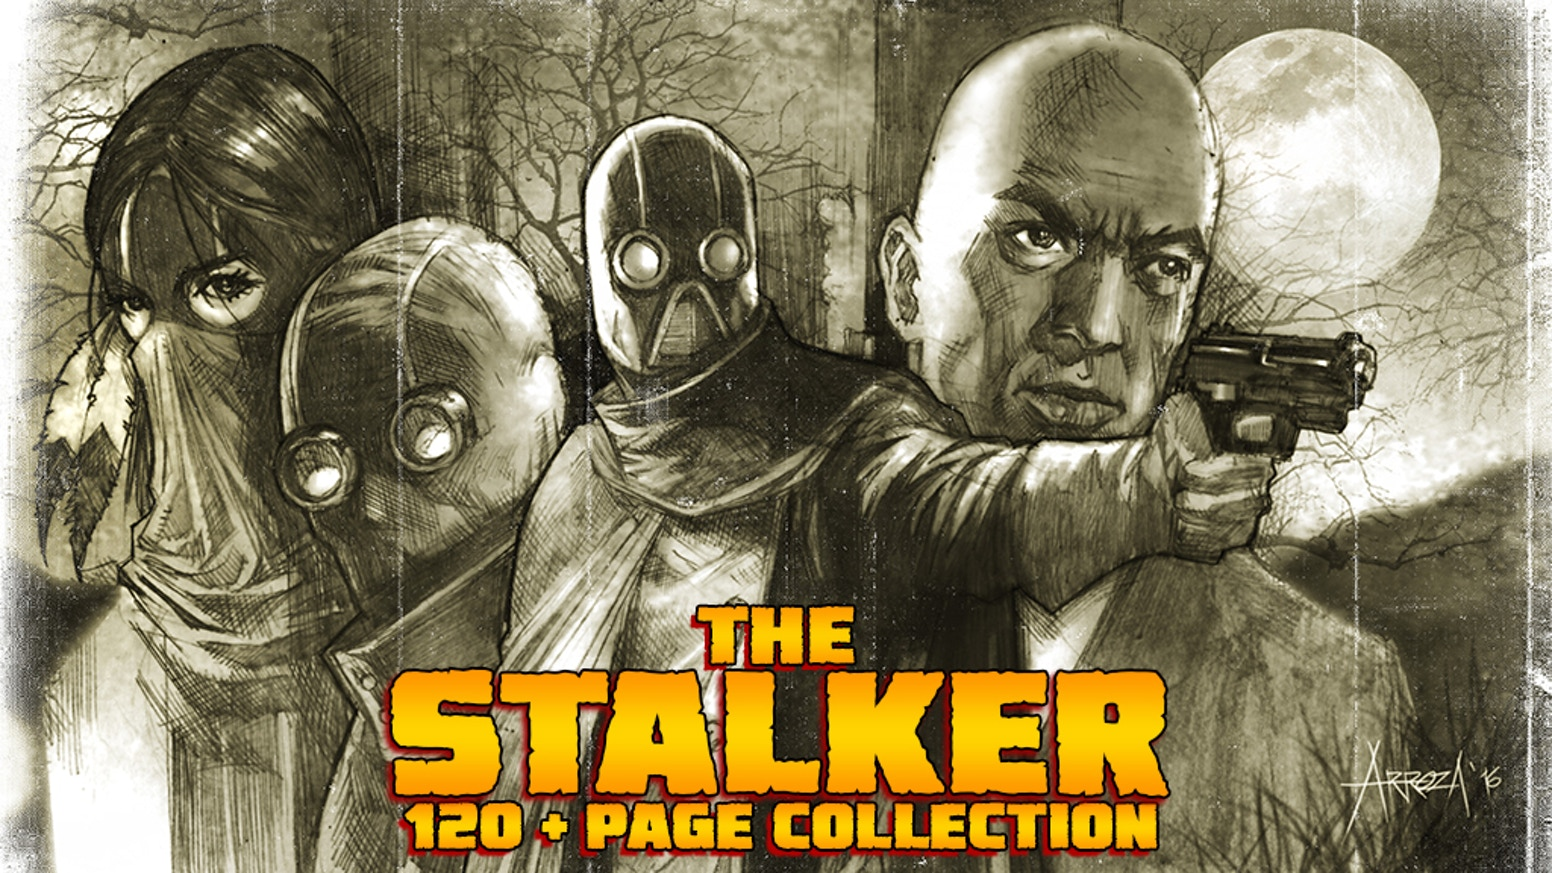 Utilizing an immortal emissary, a zombie driver, and secret operatives, The Stalker hunts evil and protects the city of Obsidian Bay.